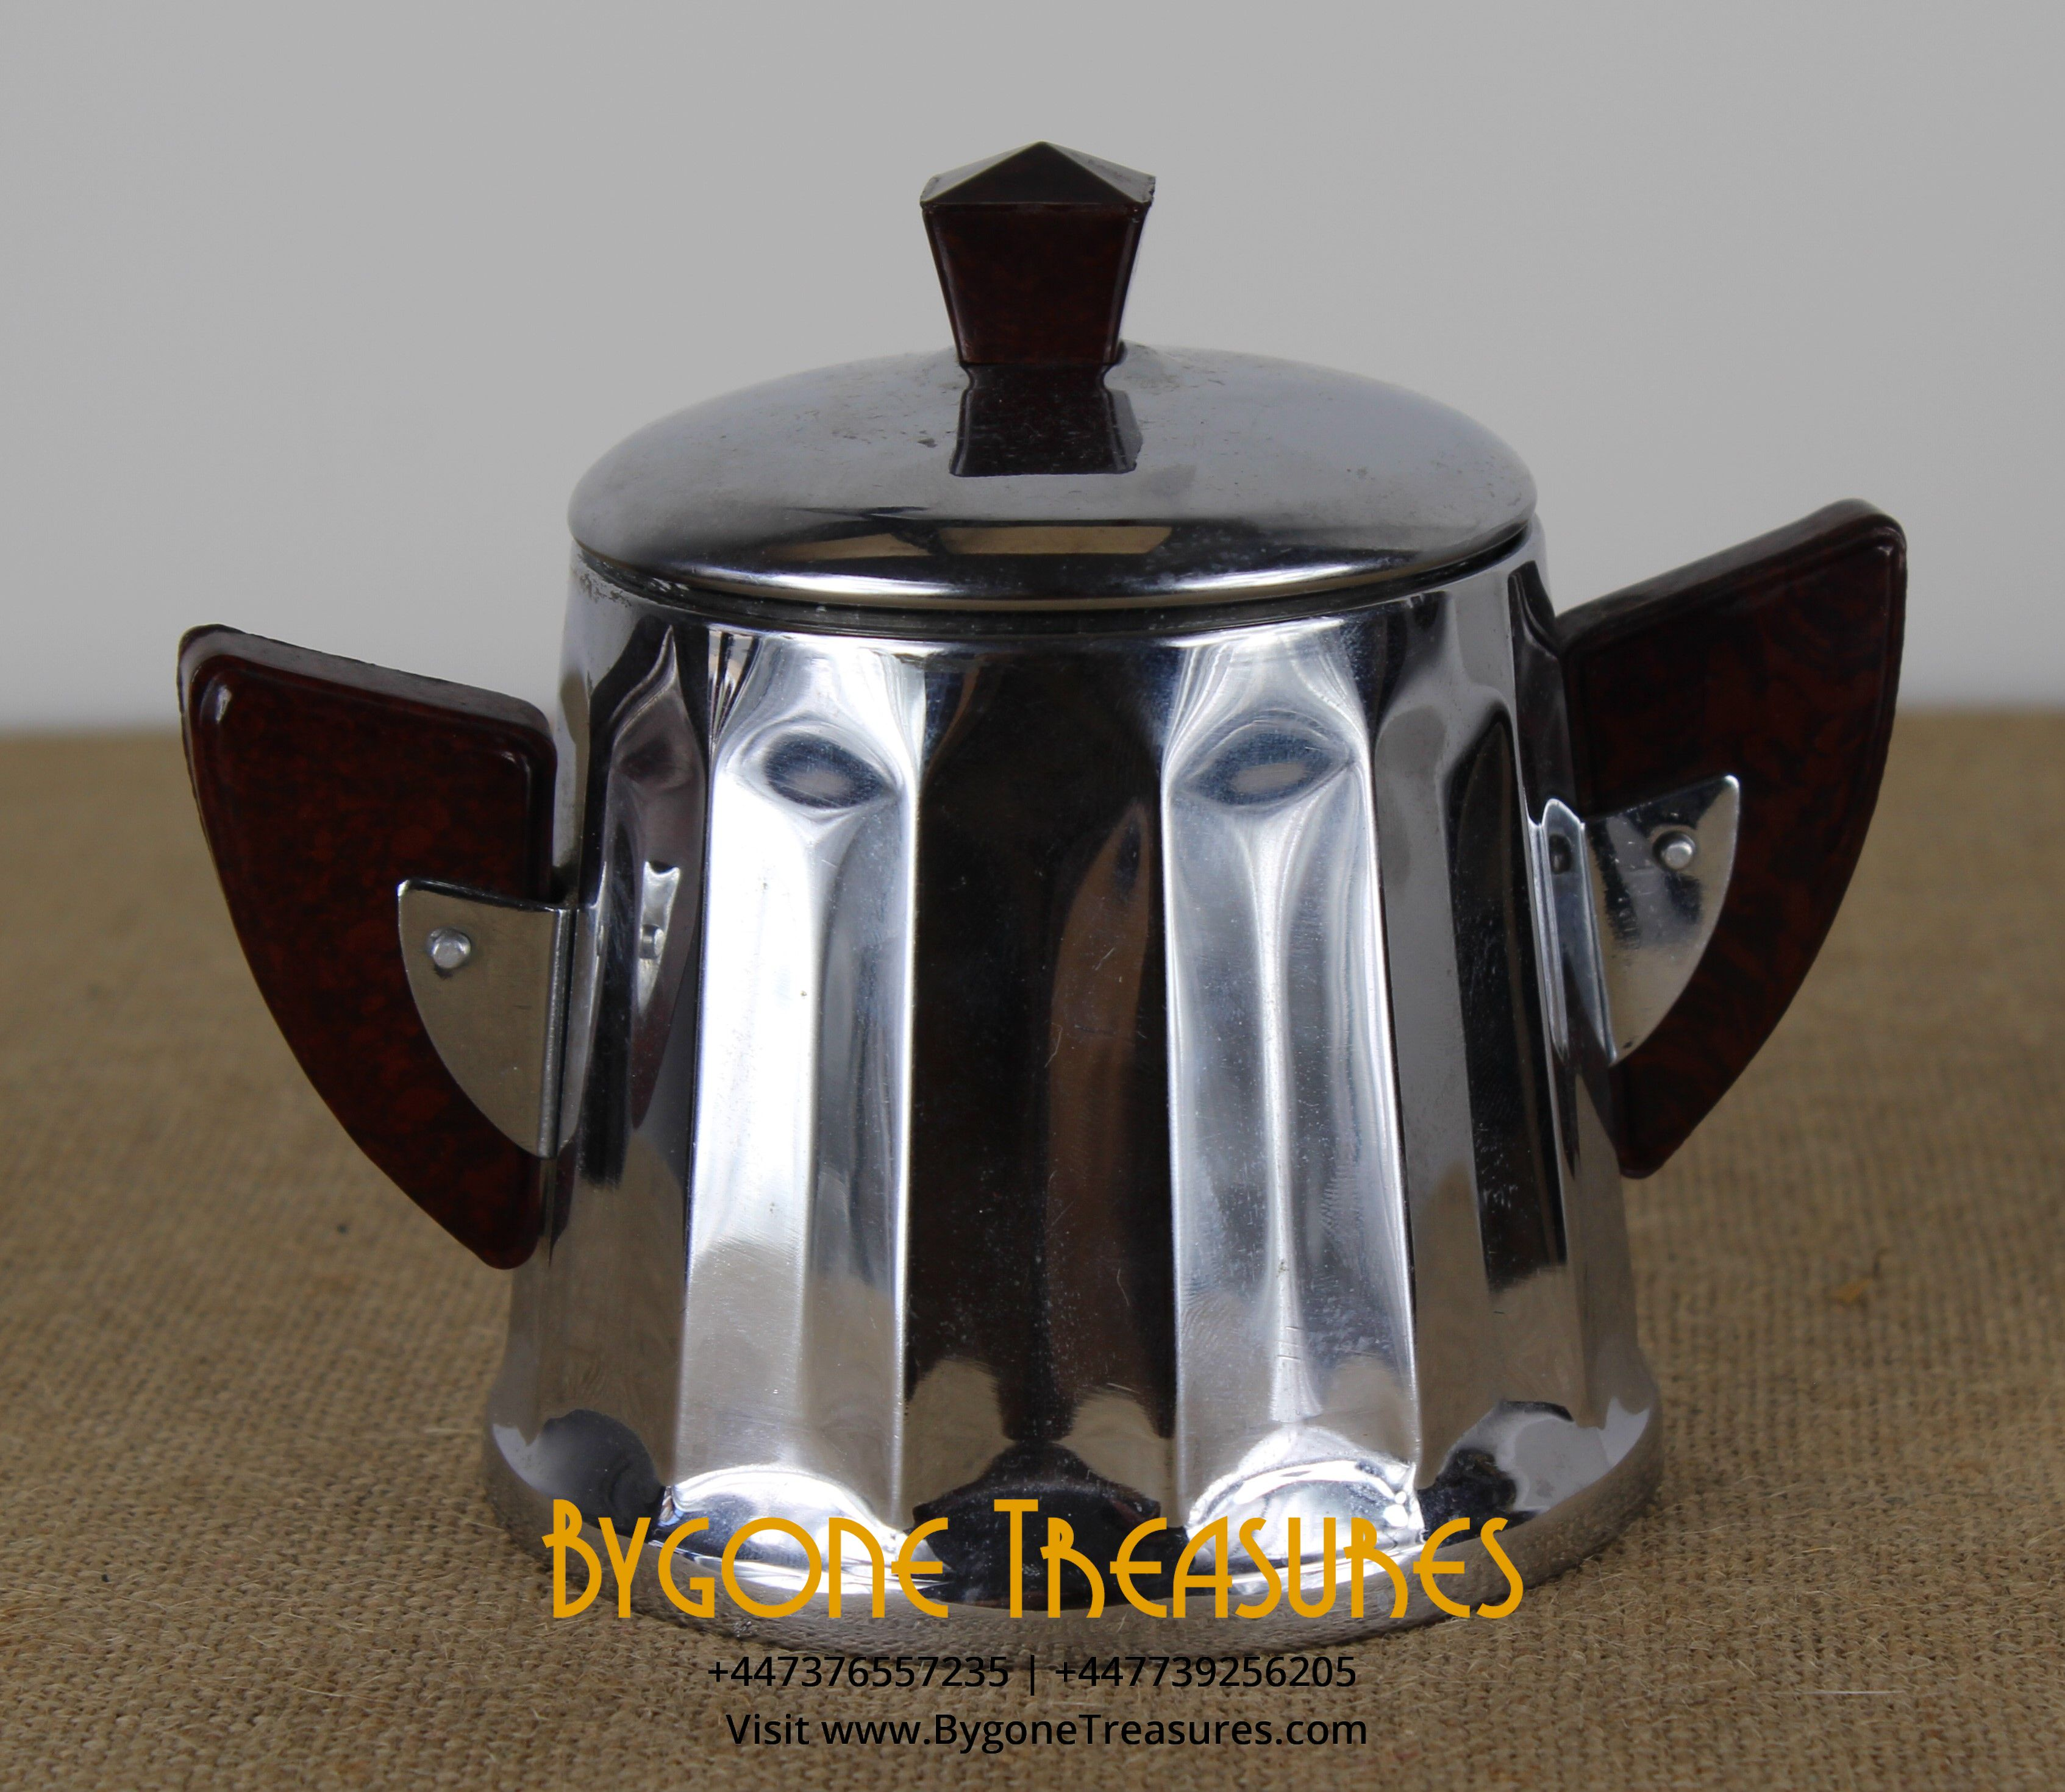 Stainless steel sugar pot wih bakelite handles (1)